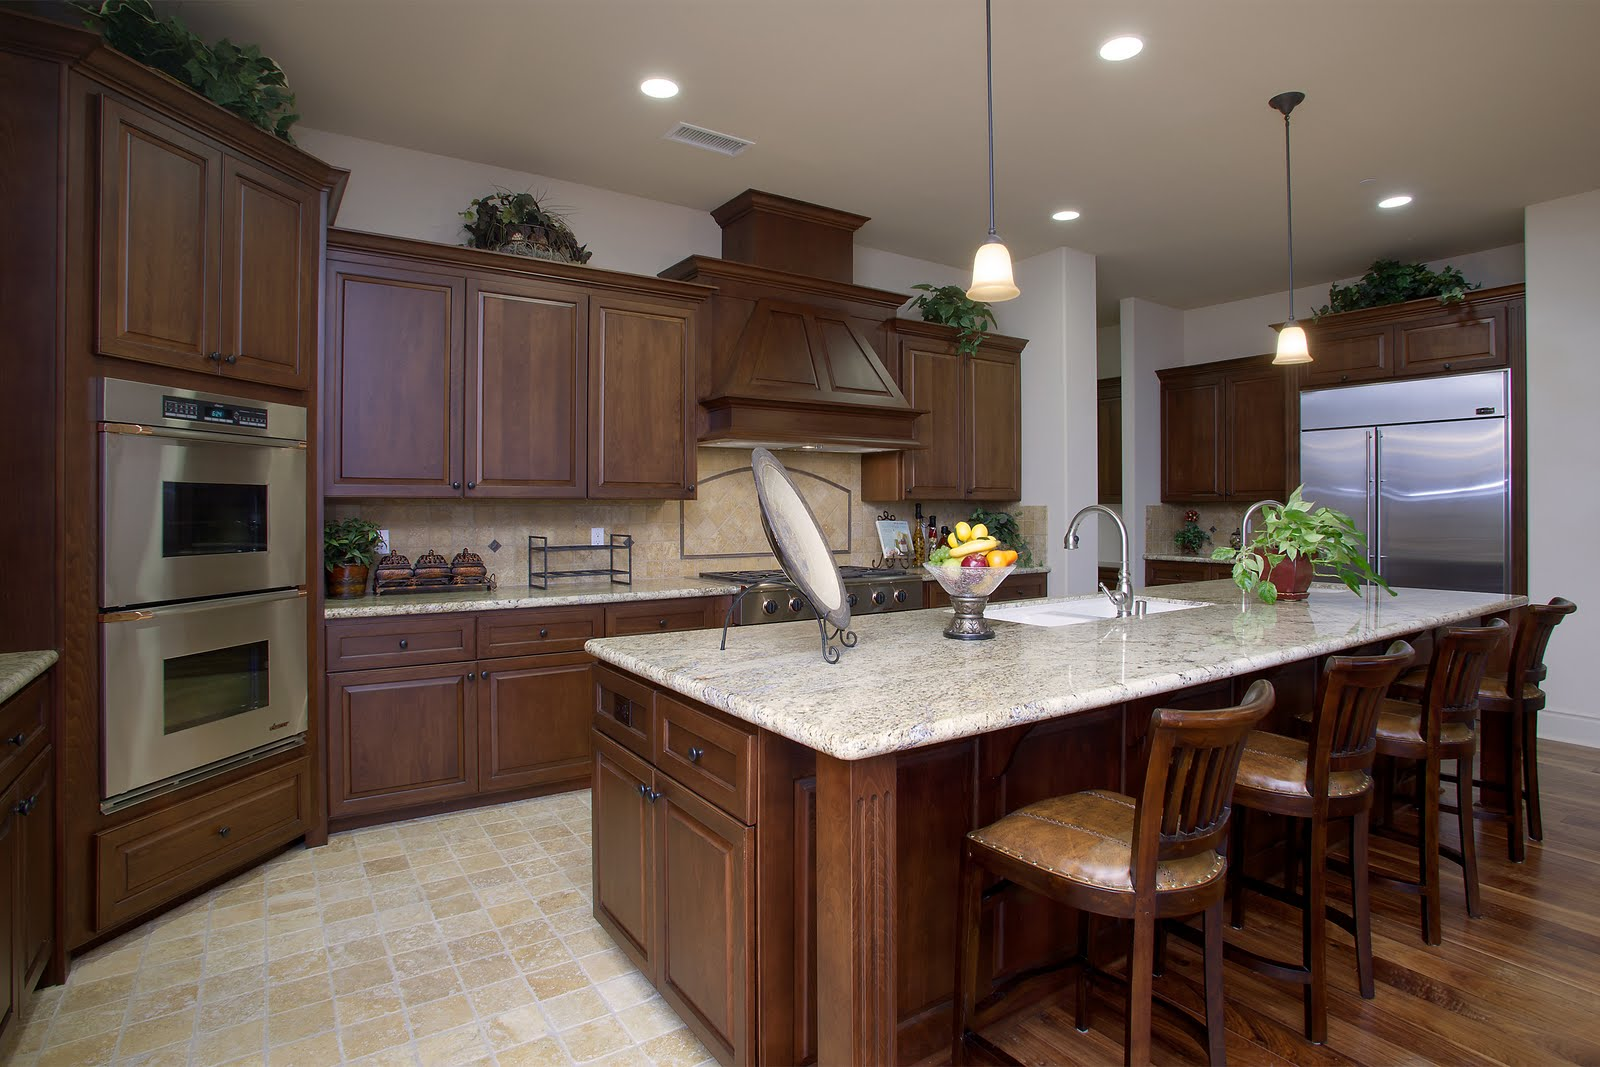 Kitchen model homes kitchen design photos 2015 for Kitchen modeler